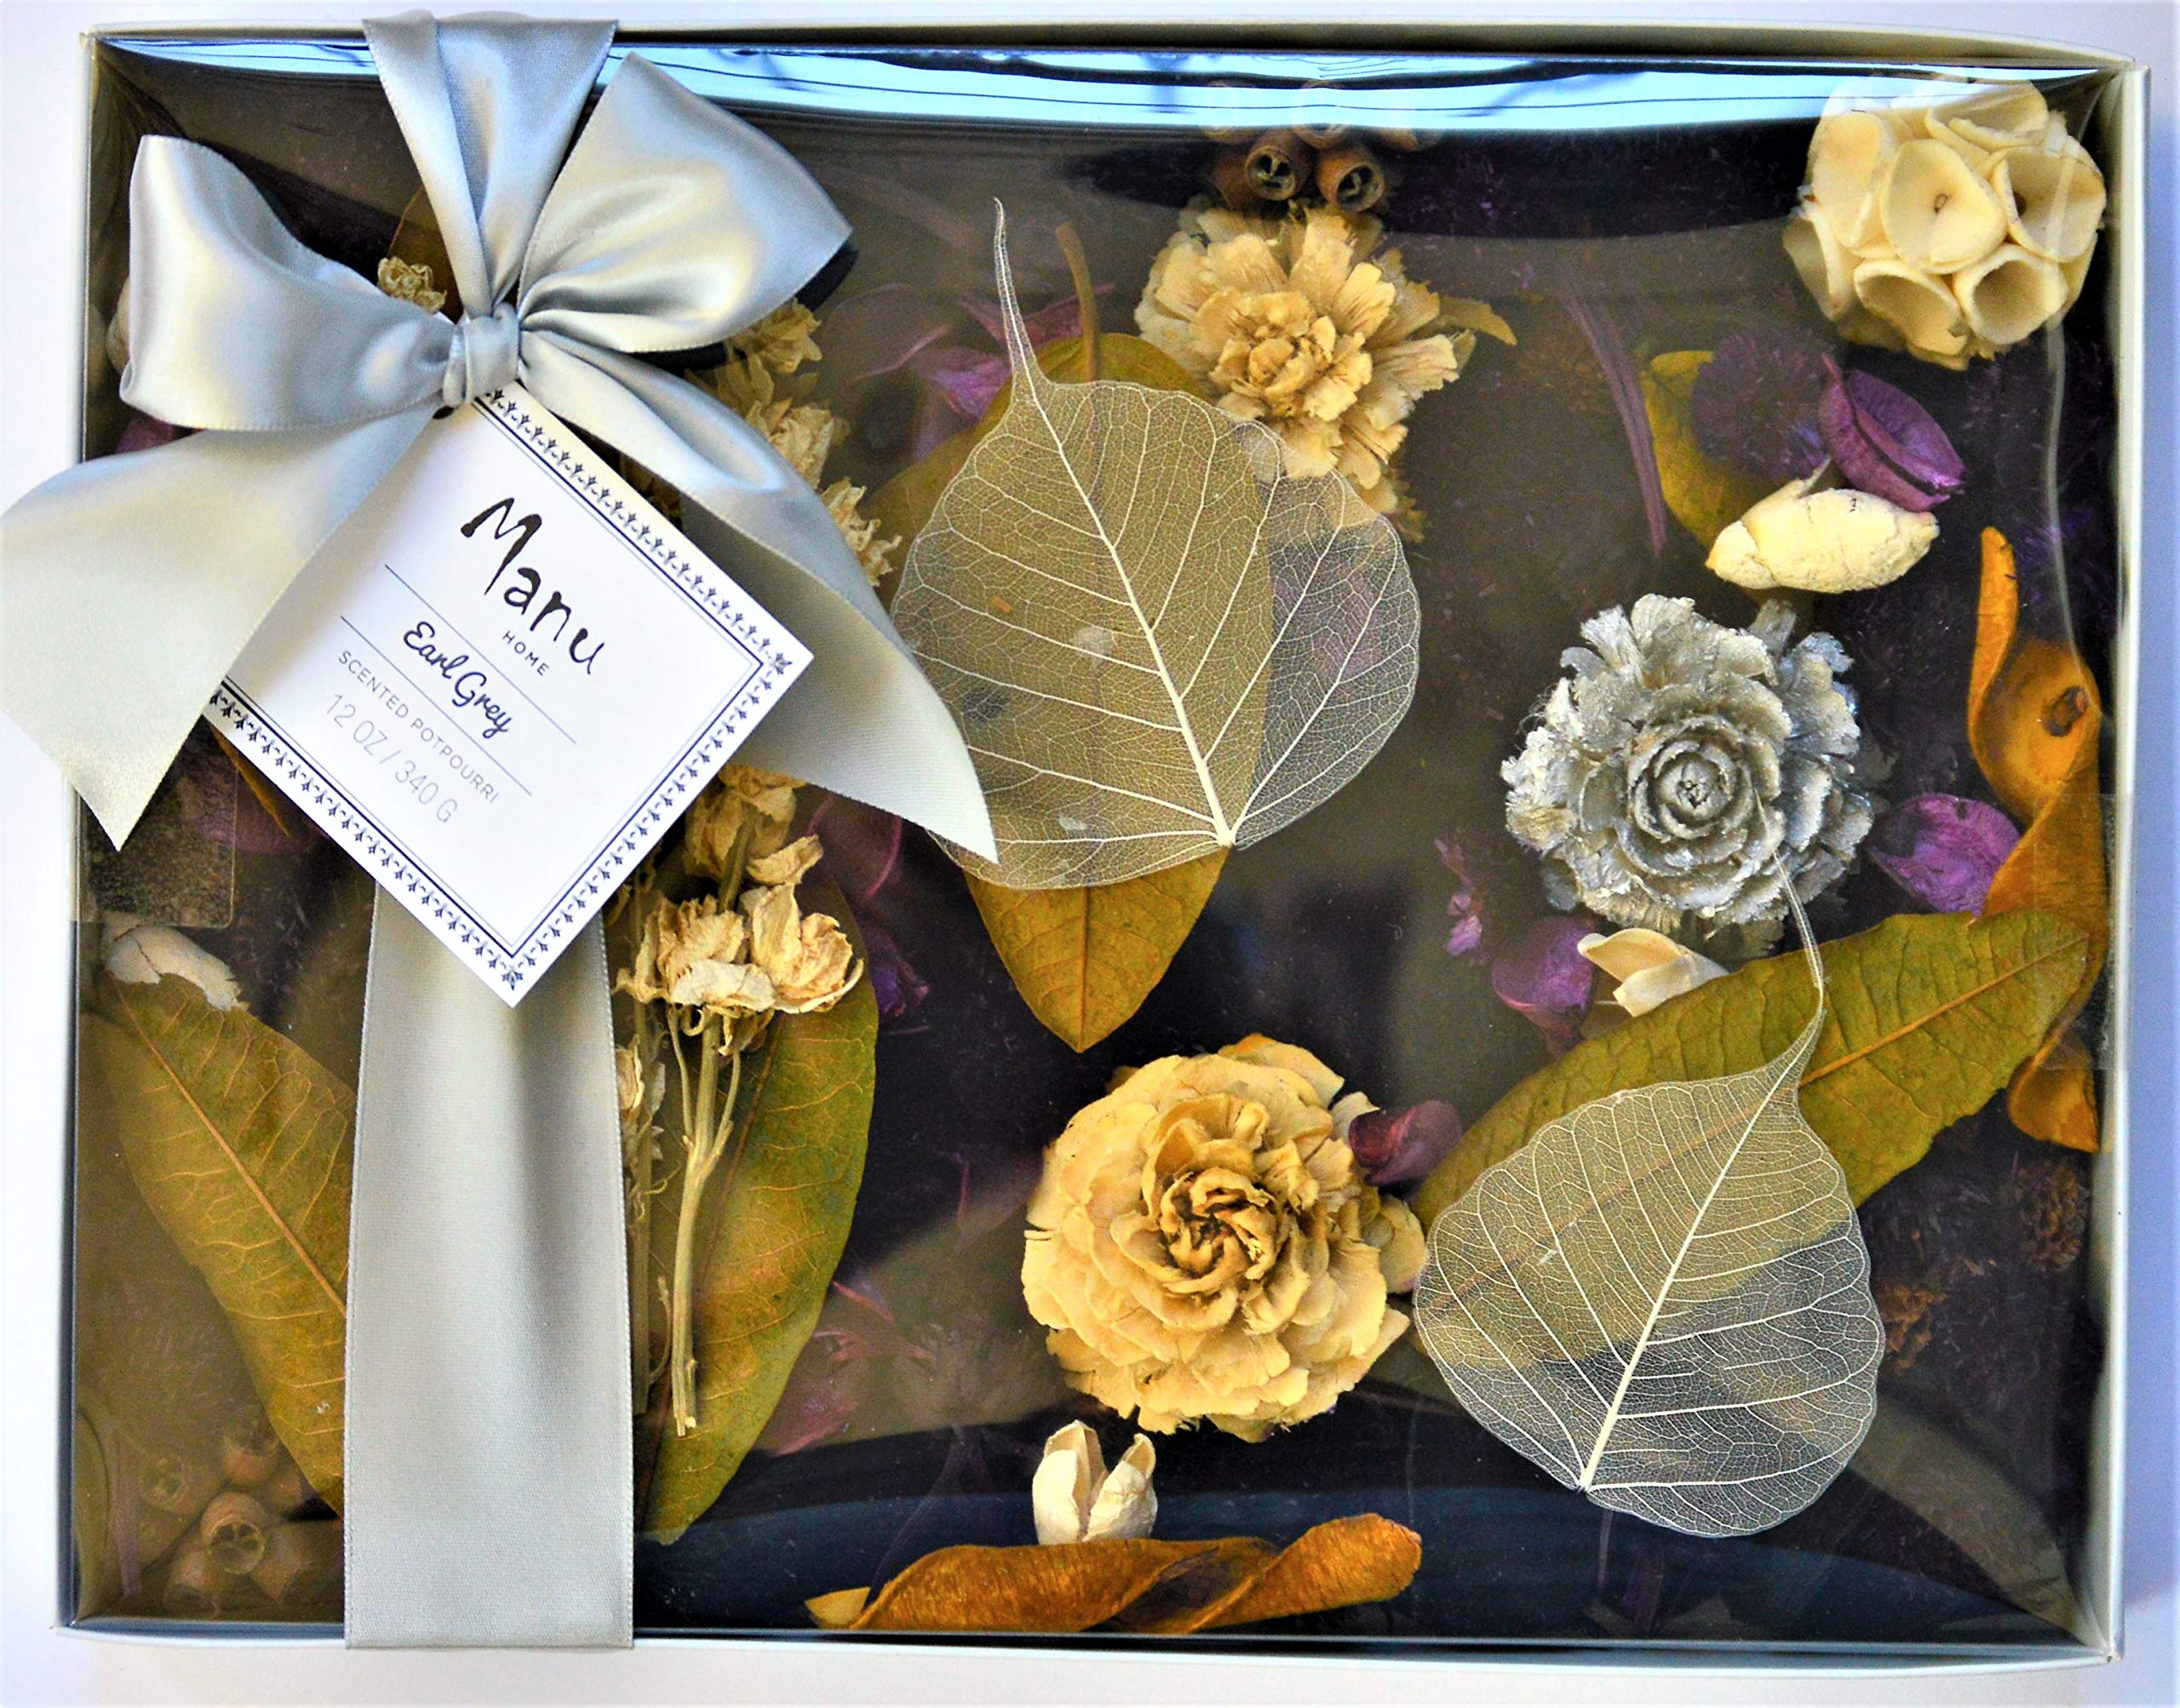 Manu Home New Earl Grey Potpourri~A Refreshing Blend of Fresh Bergamot & Black Tea Leaves Blended with Notes of Amber & Jasmine. Soothing Aromatherapy Relaxation Scent~May Help Relieve Stress~